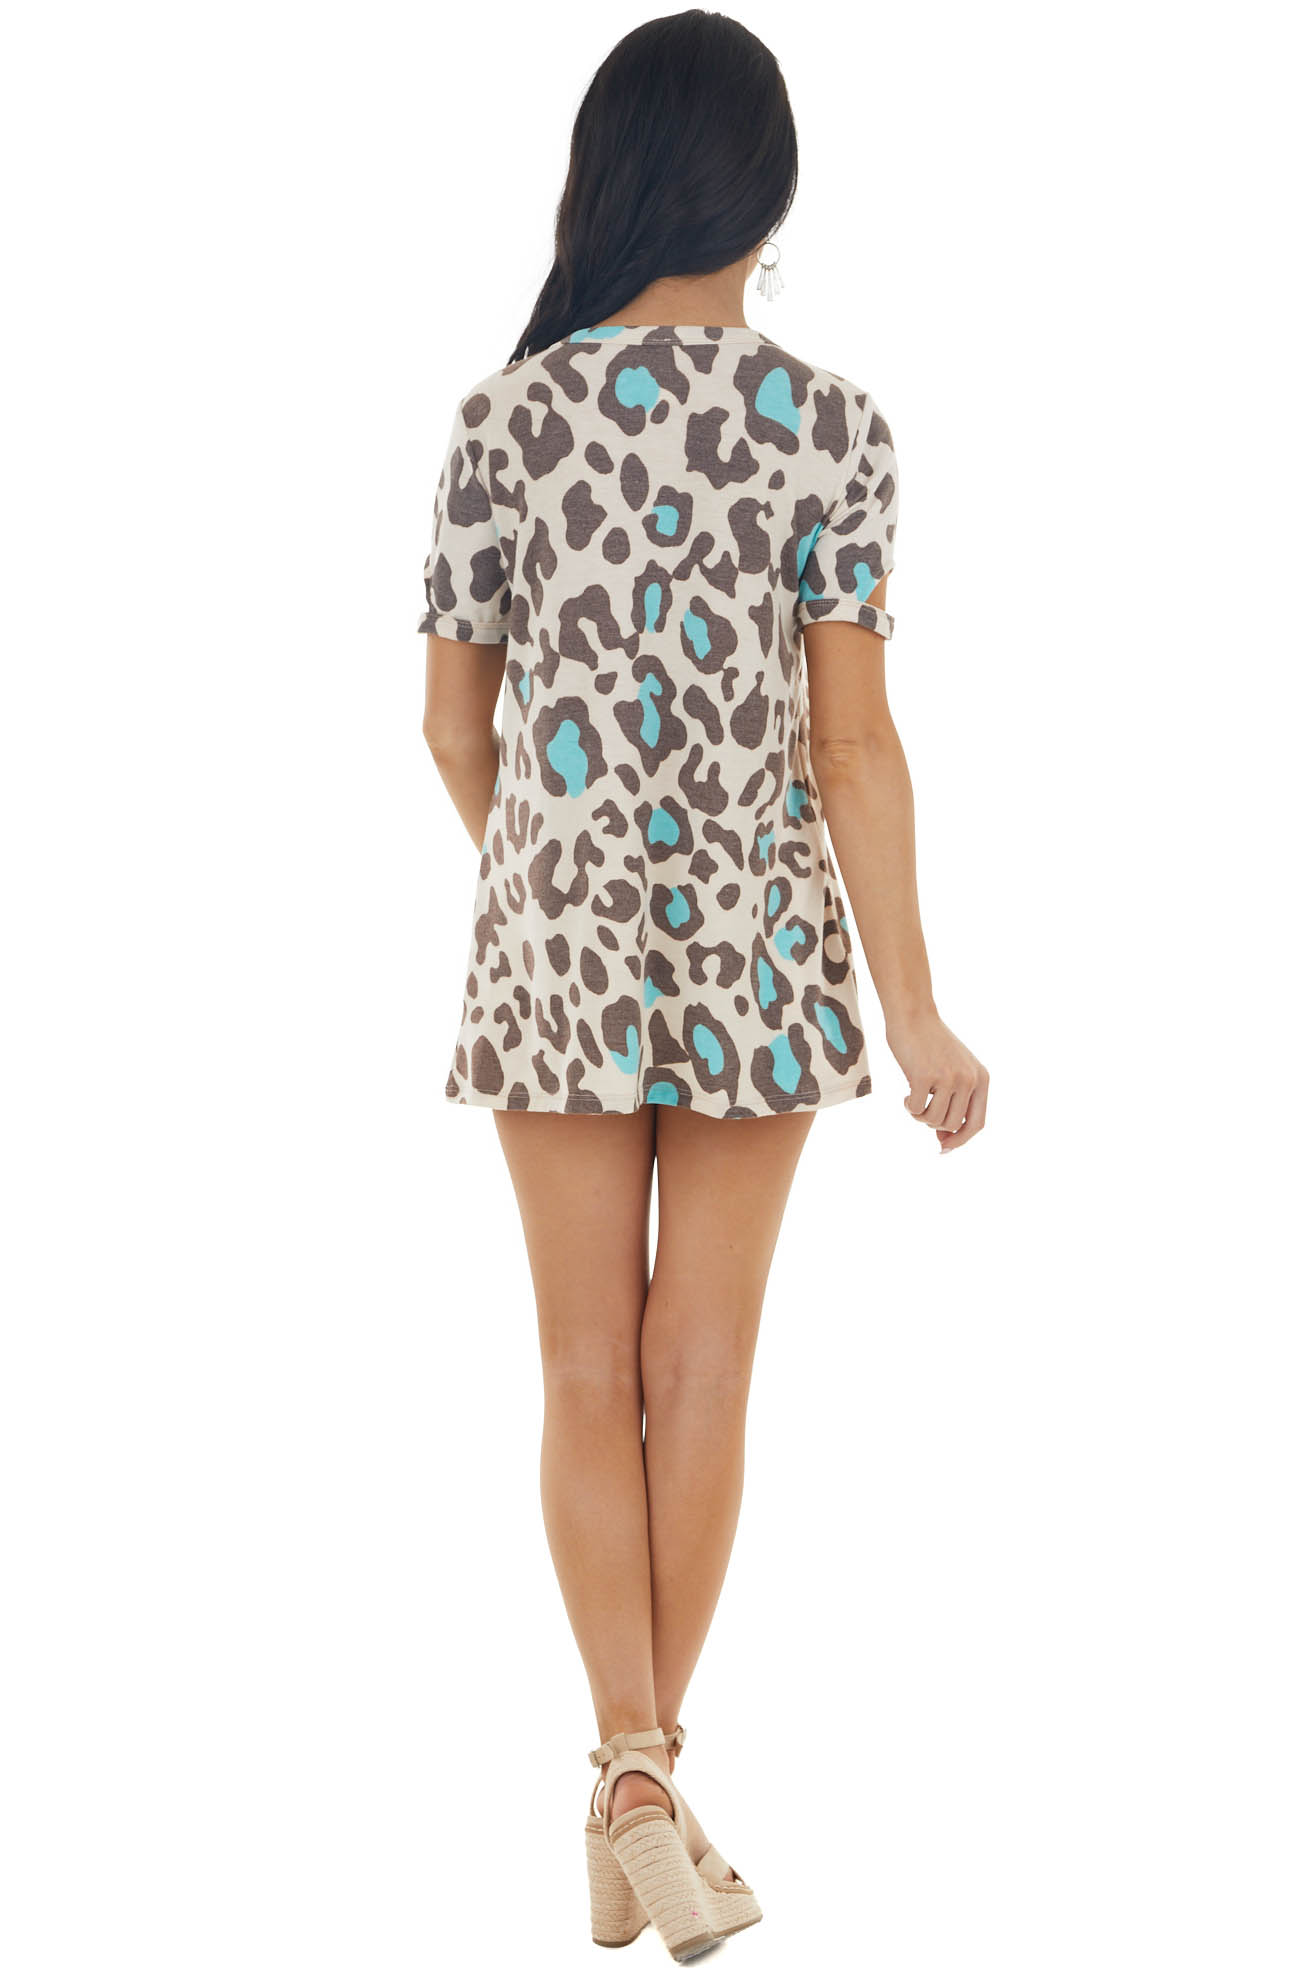 Champagne and Coffee Leopard Print Tee with Sleeve Cut Outs